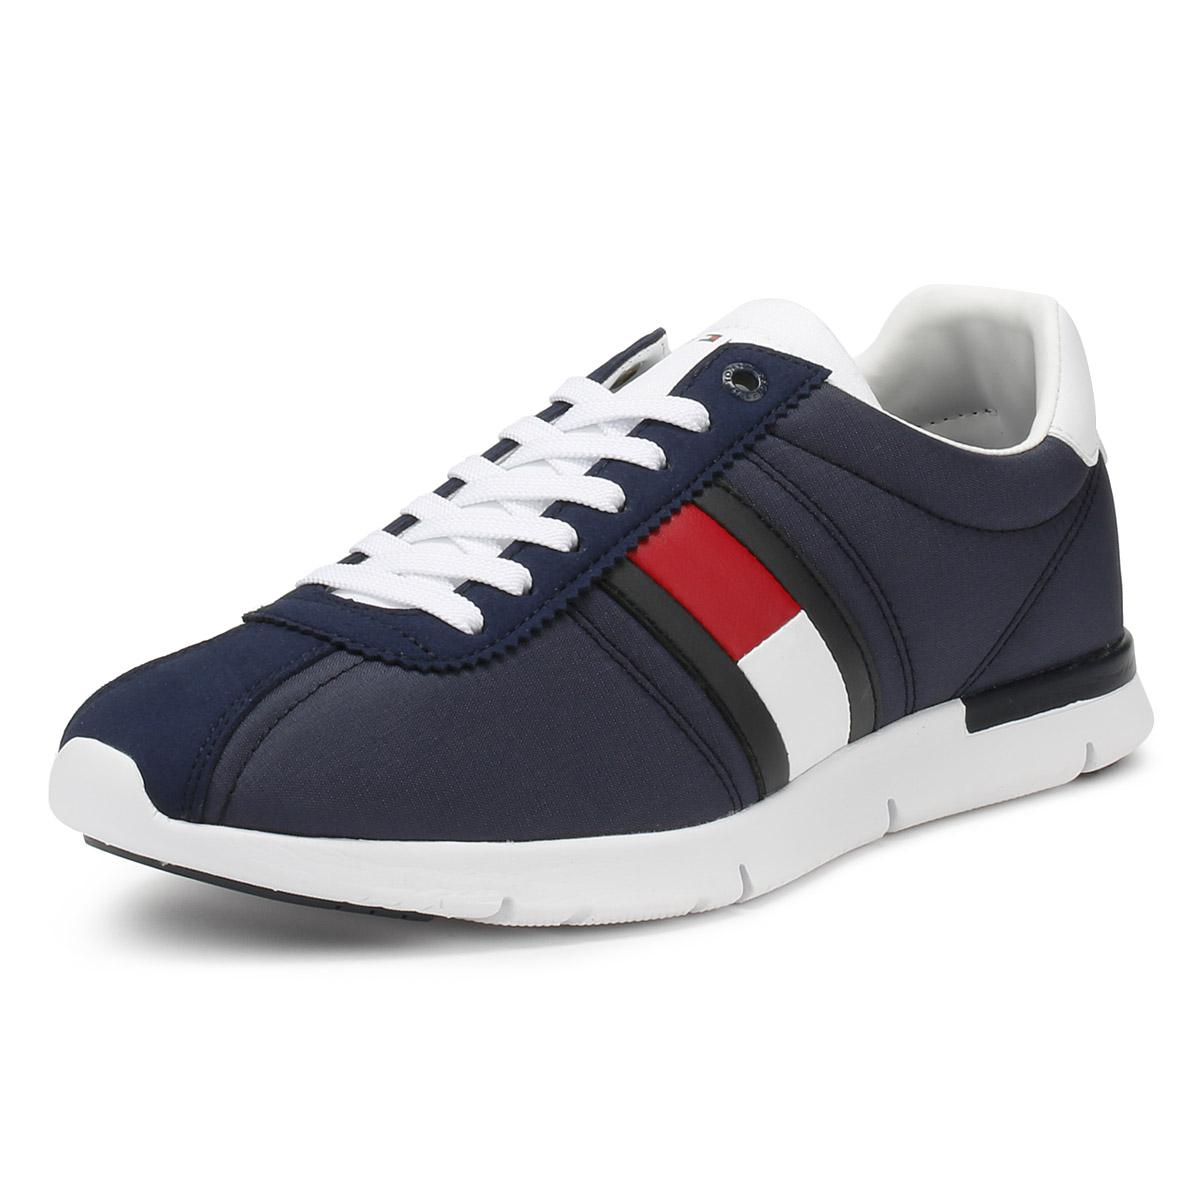 5cf3a3d7c2f Lyst - Tommy Hilfiger Retro Lightweight Sneaker Low-top in Blue for Men